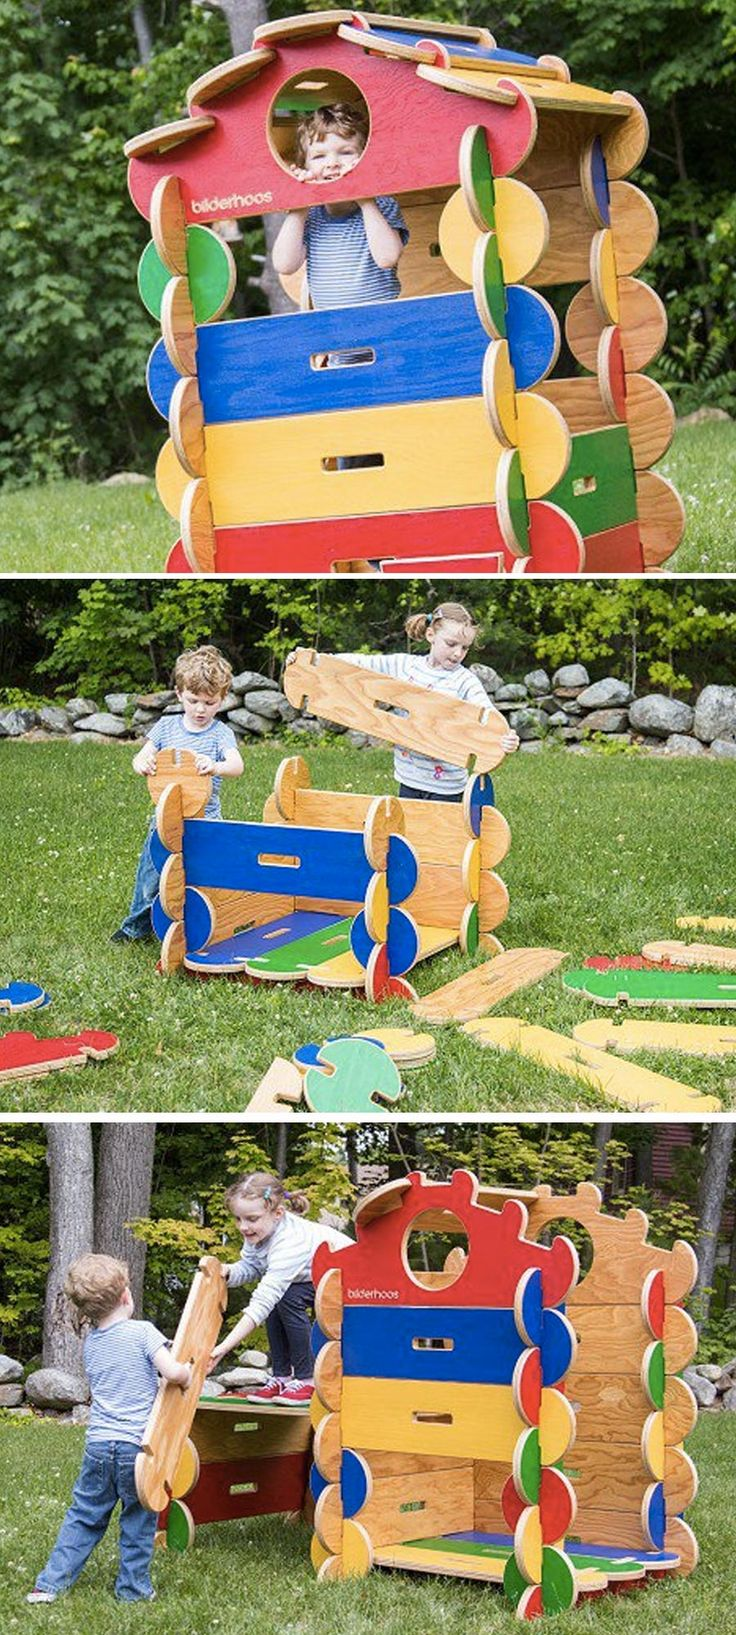 Bilderhoos building sets are handcrafted in the U.S. of sustainable wood. They're easy for kids to assemble into life-sized forts, houses, stores, whatever their imaginations can think up.